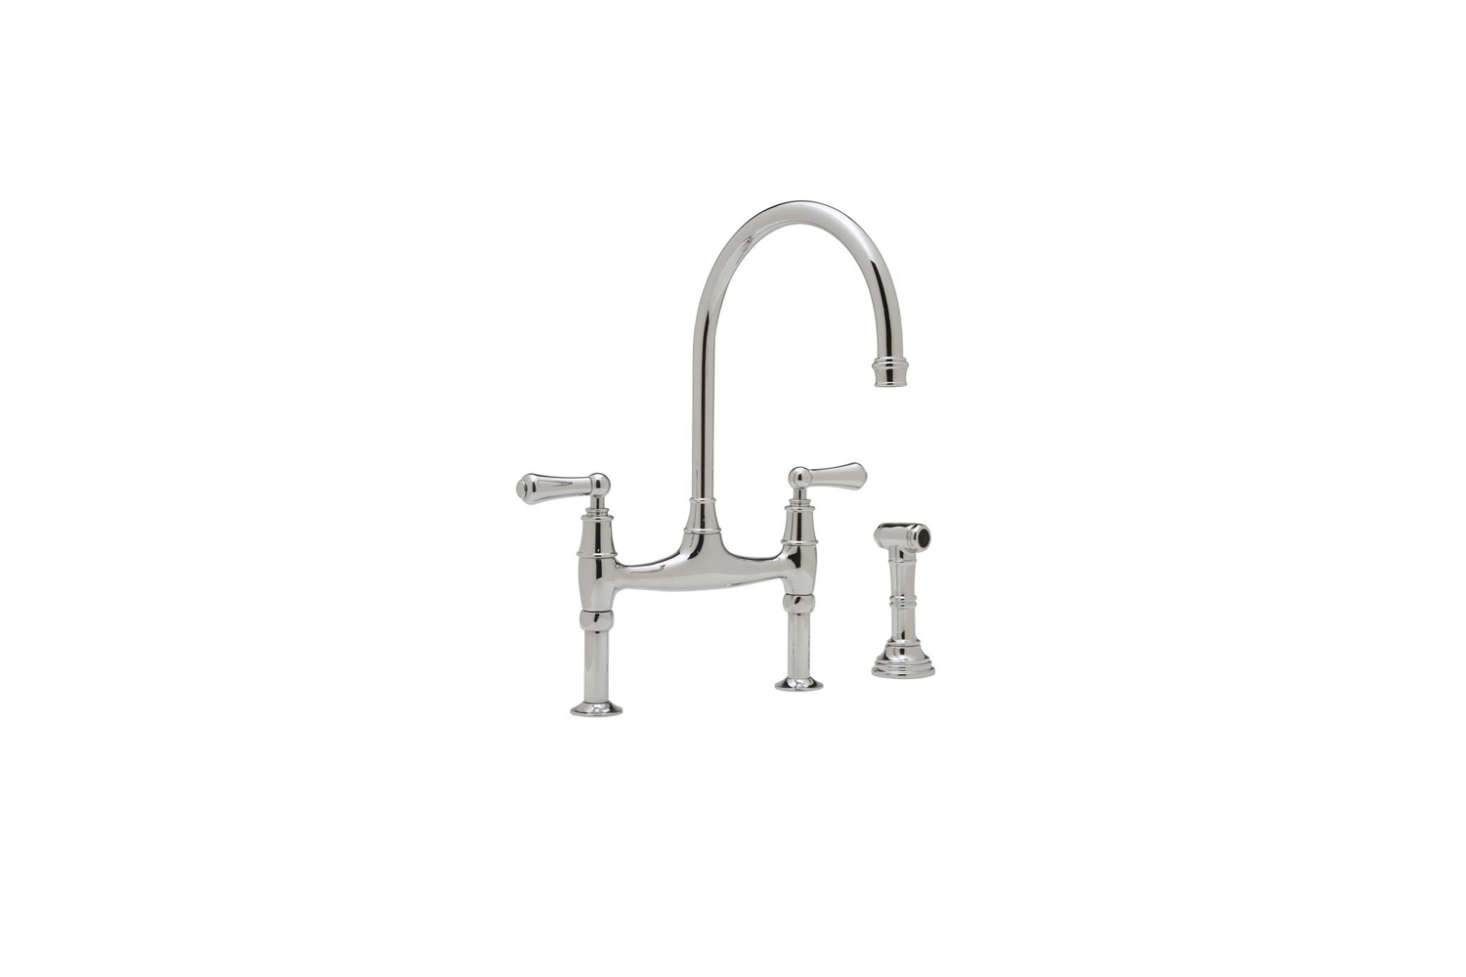 The Perrin & Rowe Bridge Kitchen Faucet with Side Spray (U.4719L-EB-2) in Chrome is $1,317.75 at Faucet Direct.